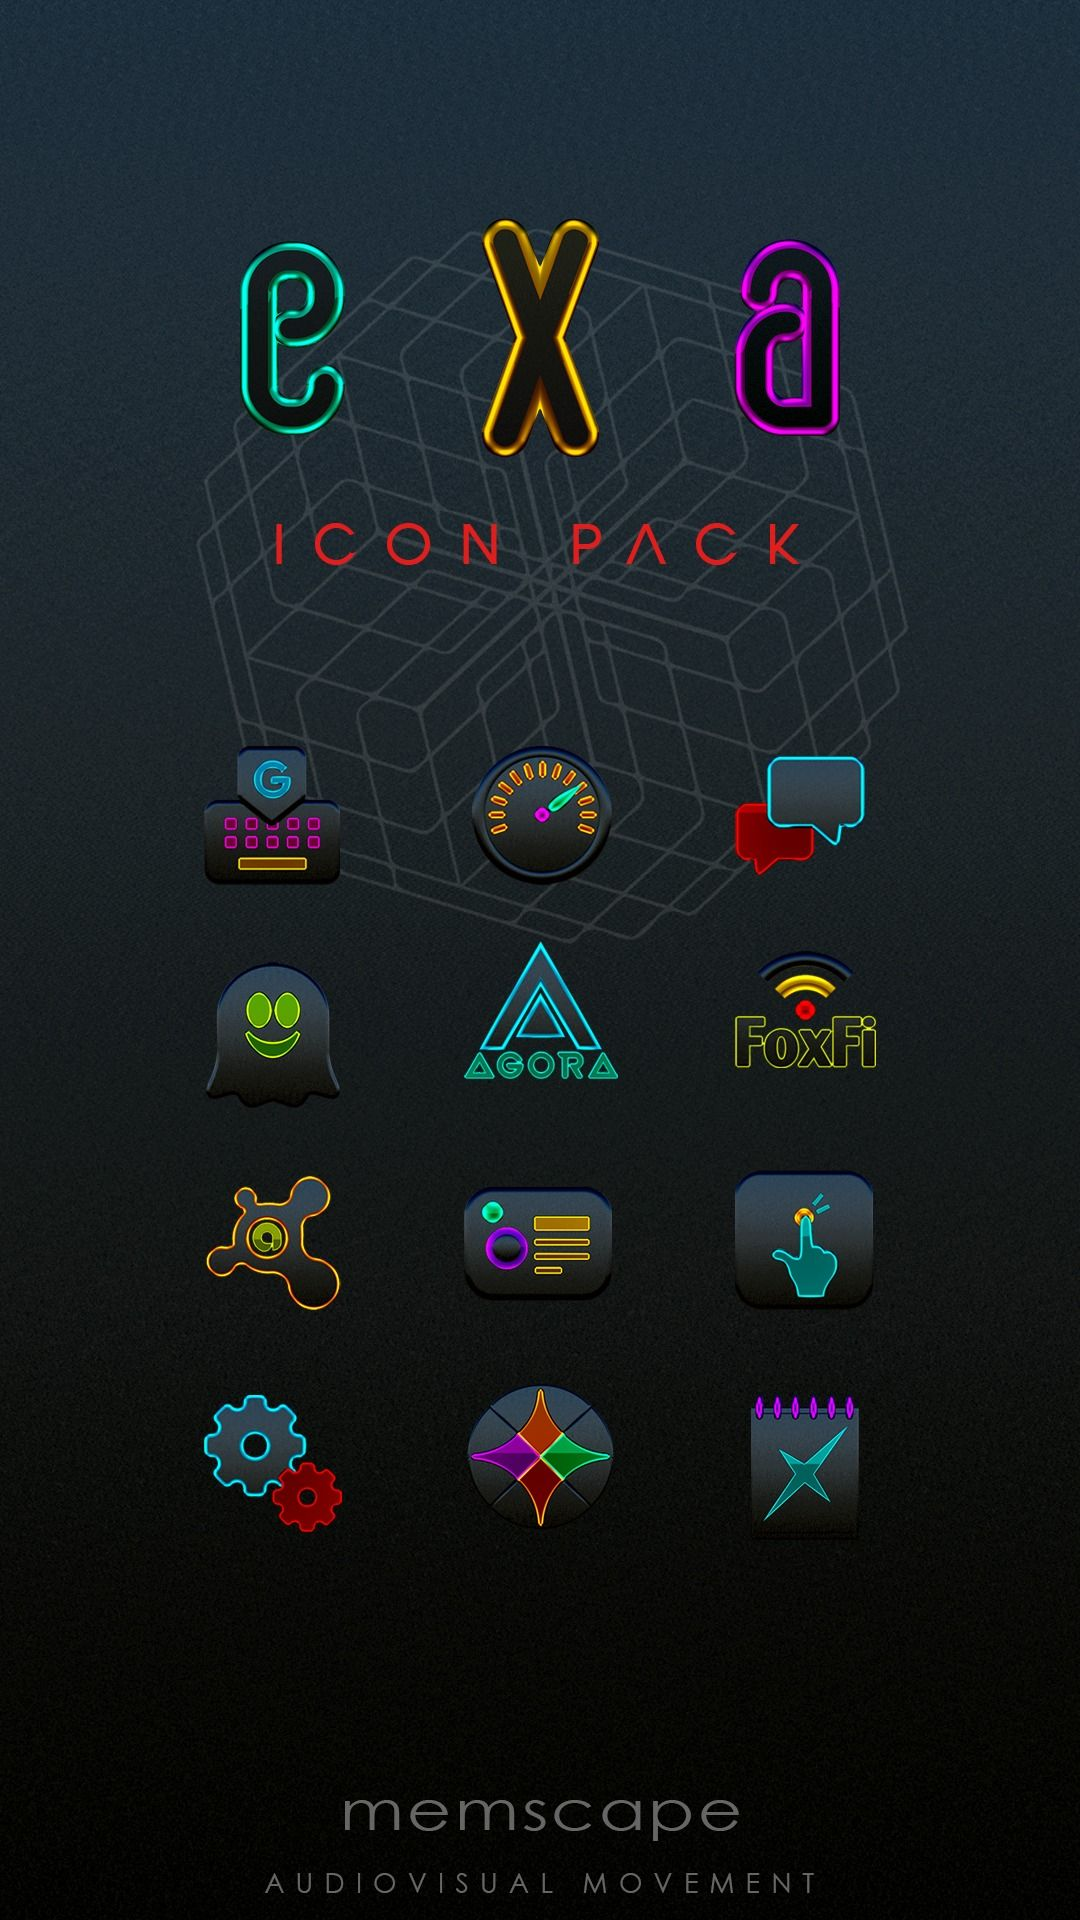 The EXA Icon Pack requires an Android smartphone or tablet